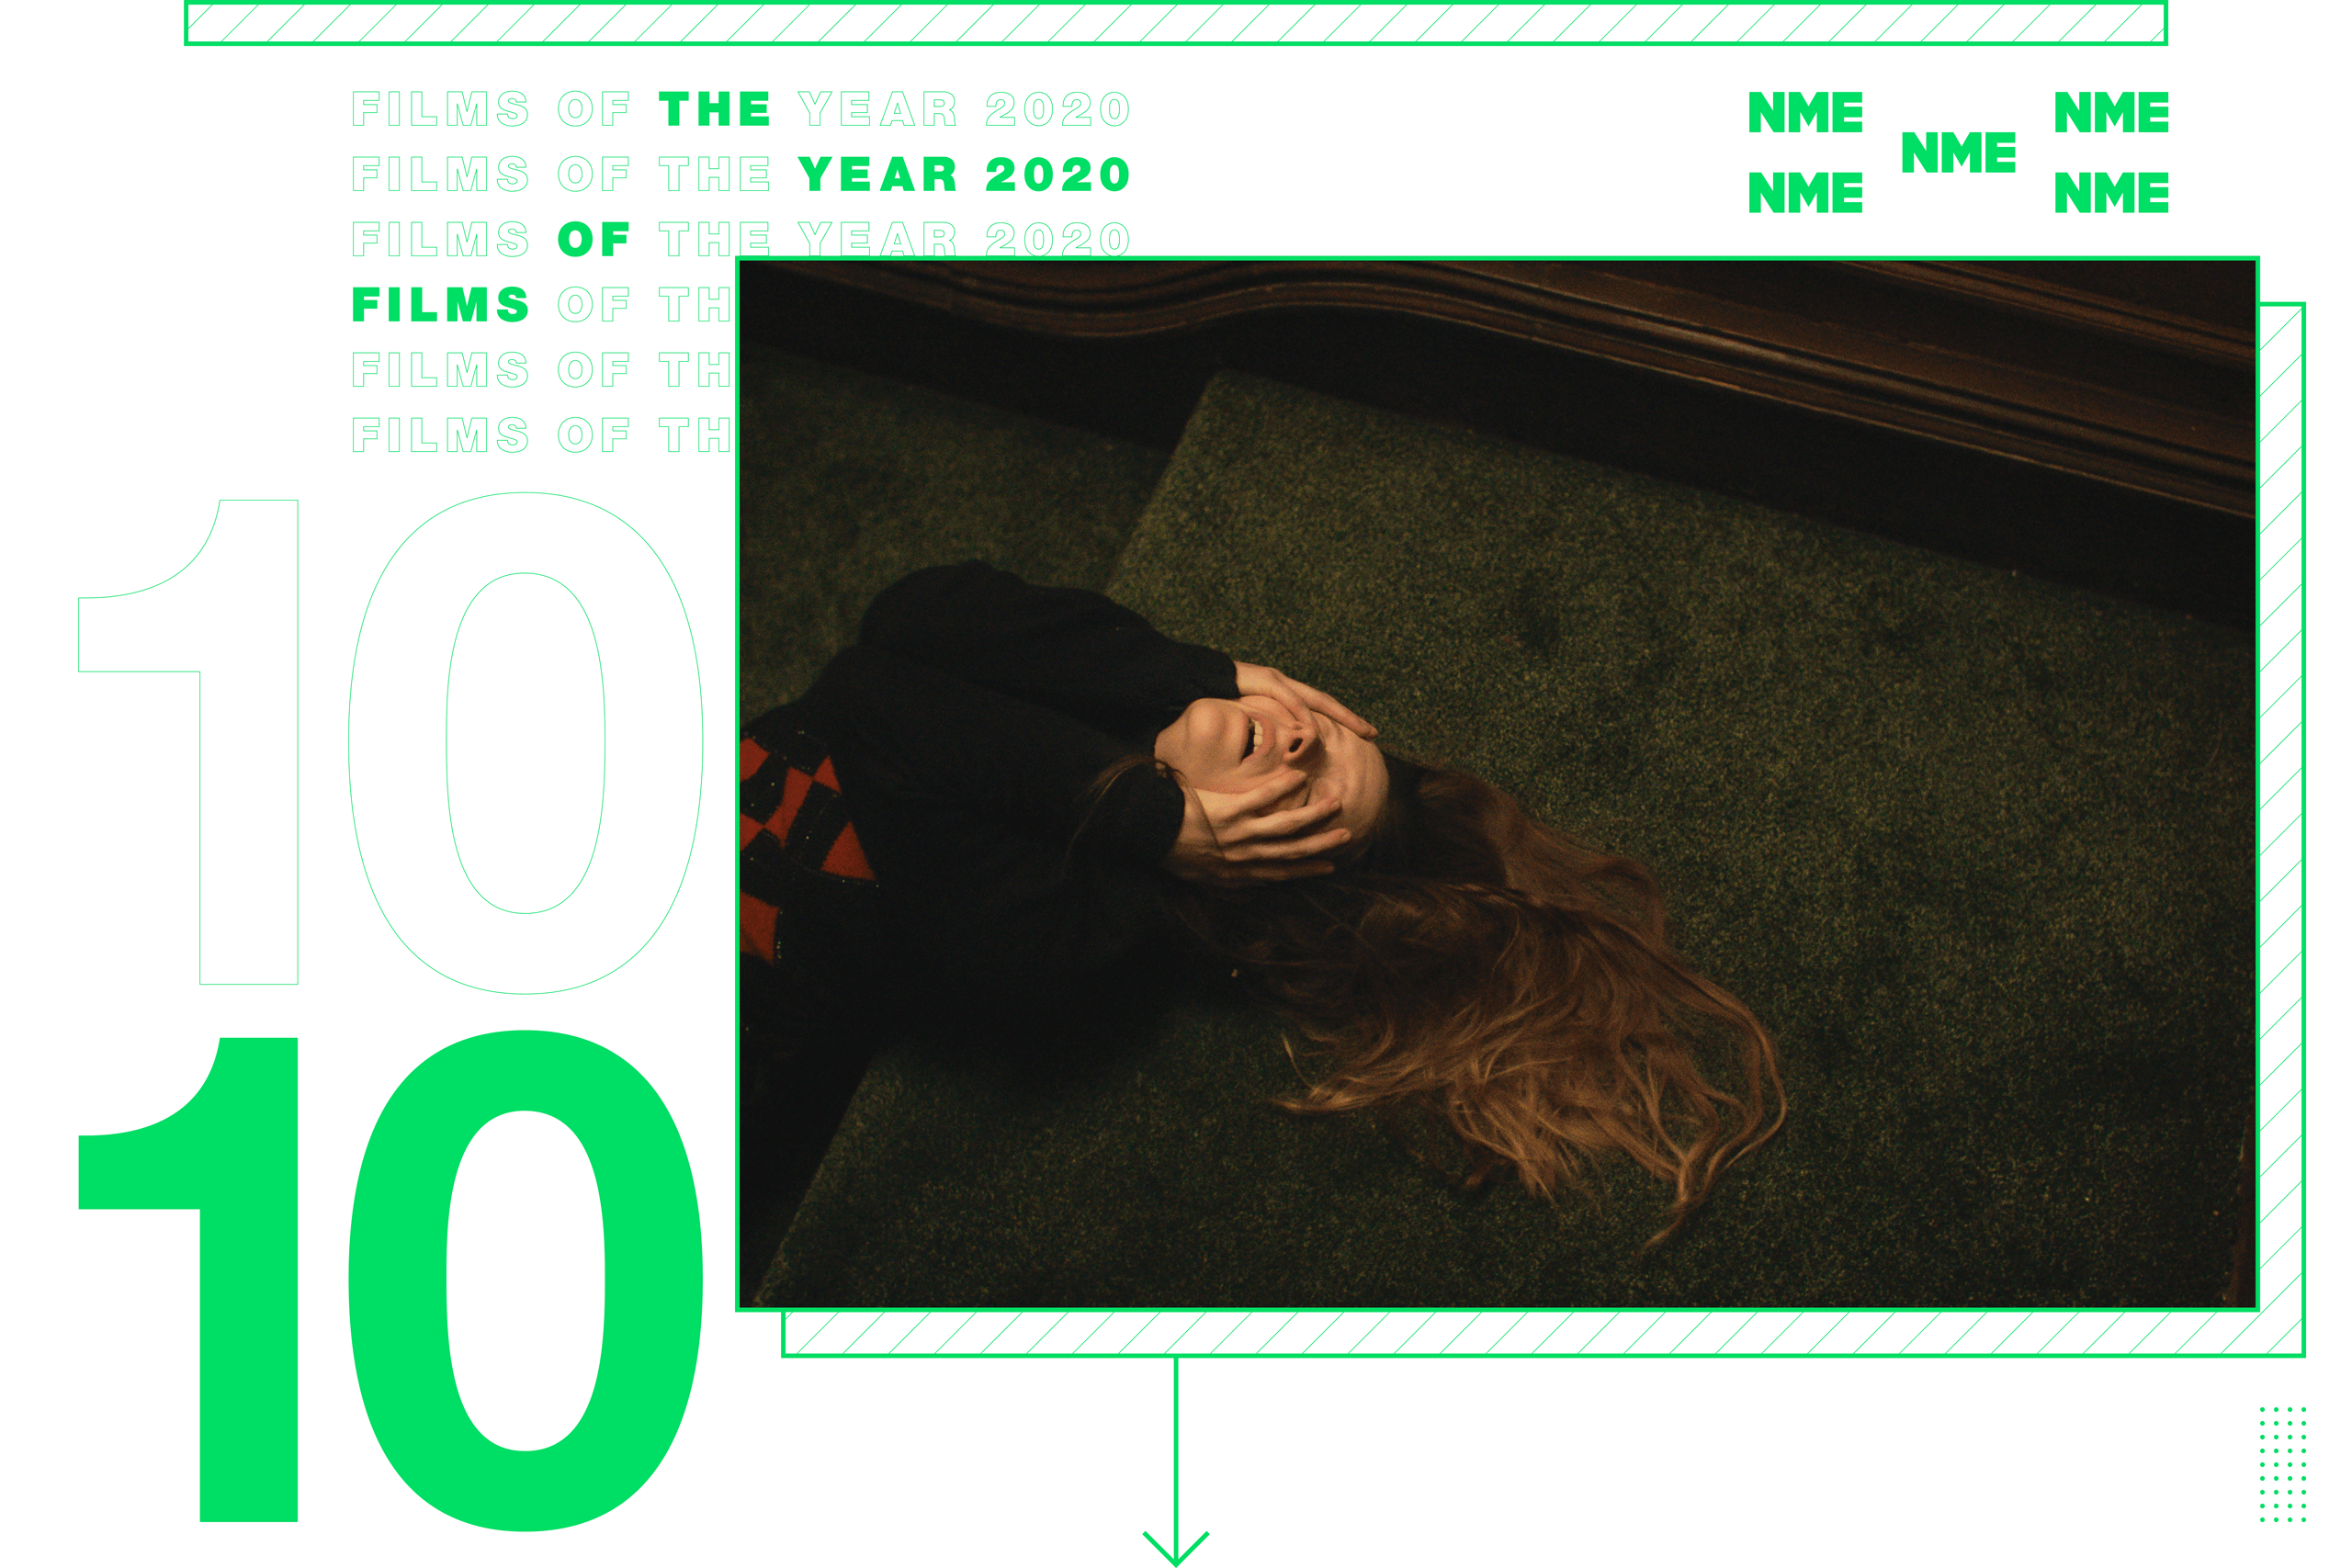 NME Global Films of the Year Saint Maud